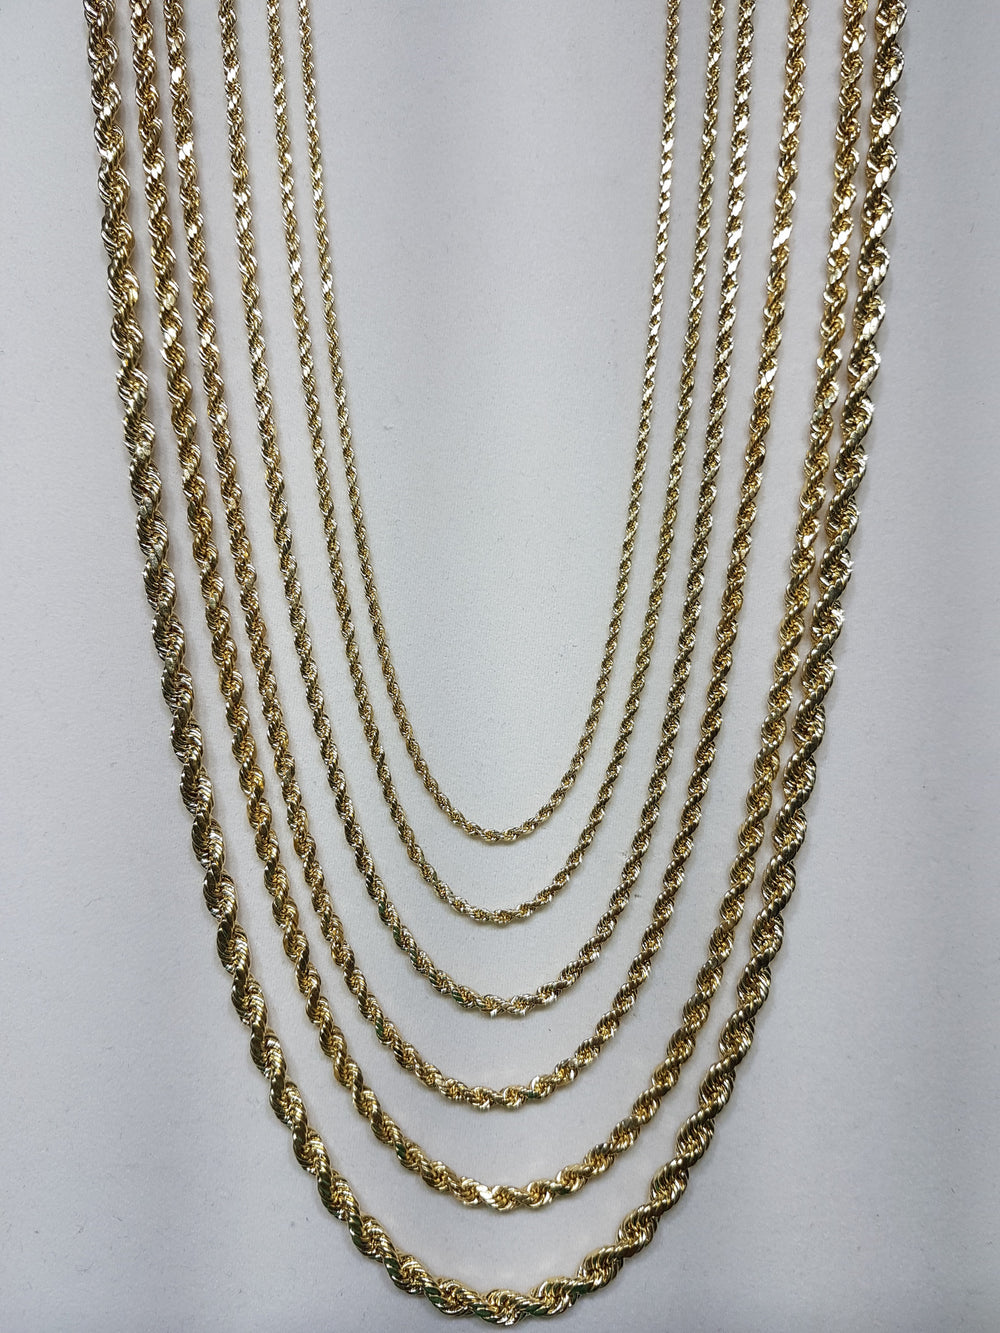 chains gem image chain by hammer guide to feature gold a link